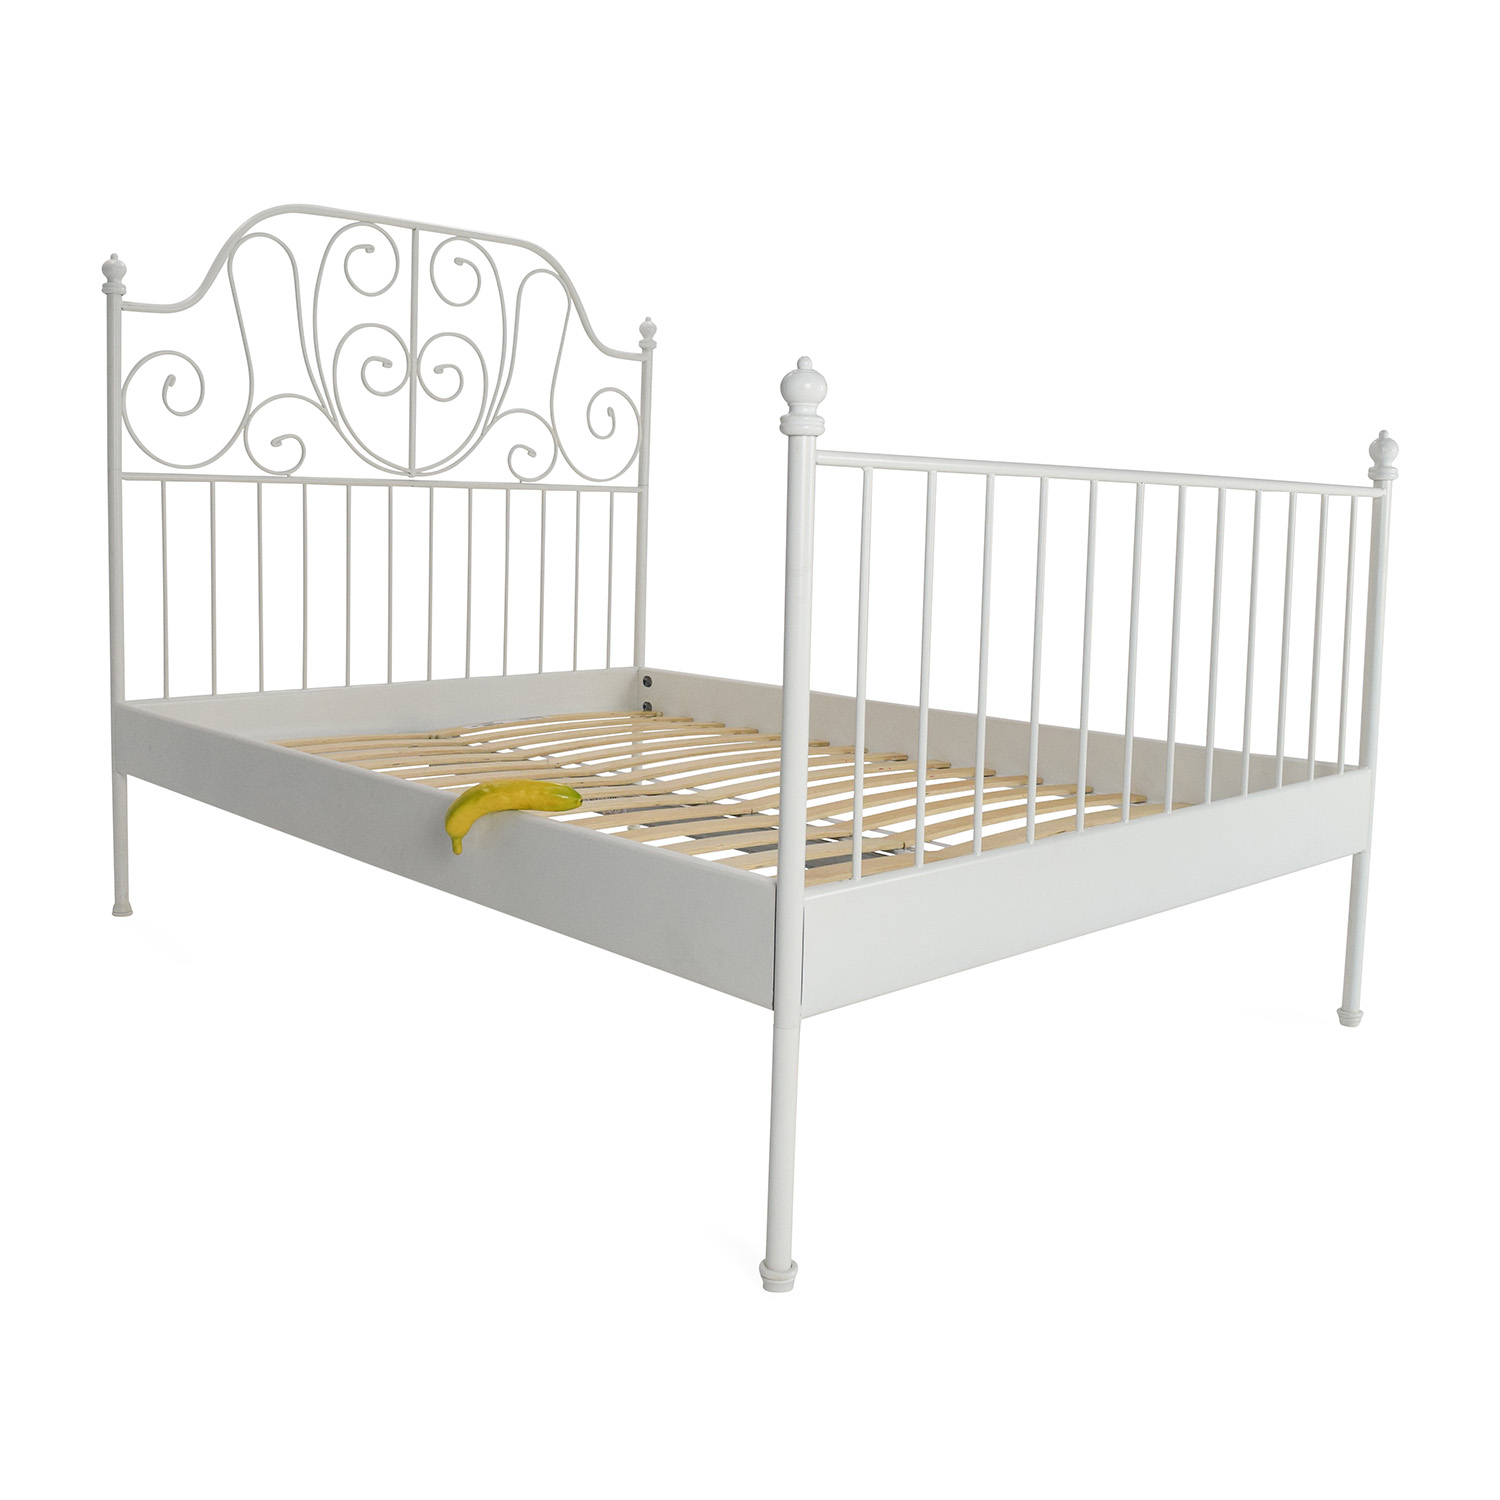 Fjellse bed frame fulldouble ikea ikea ikea full size for Full size bed frame